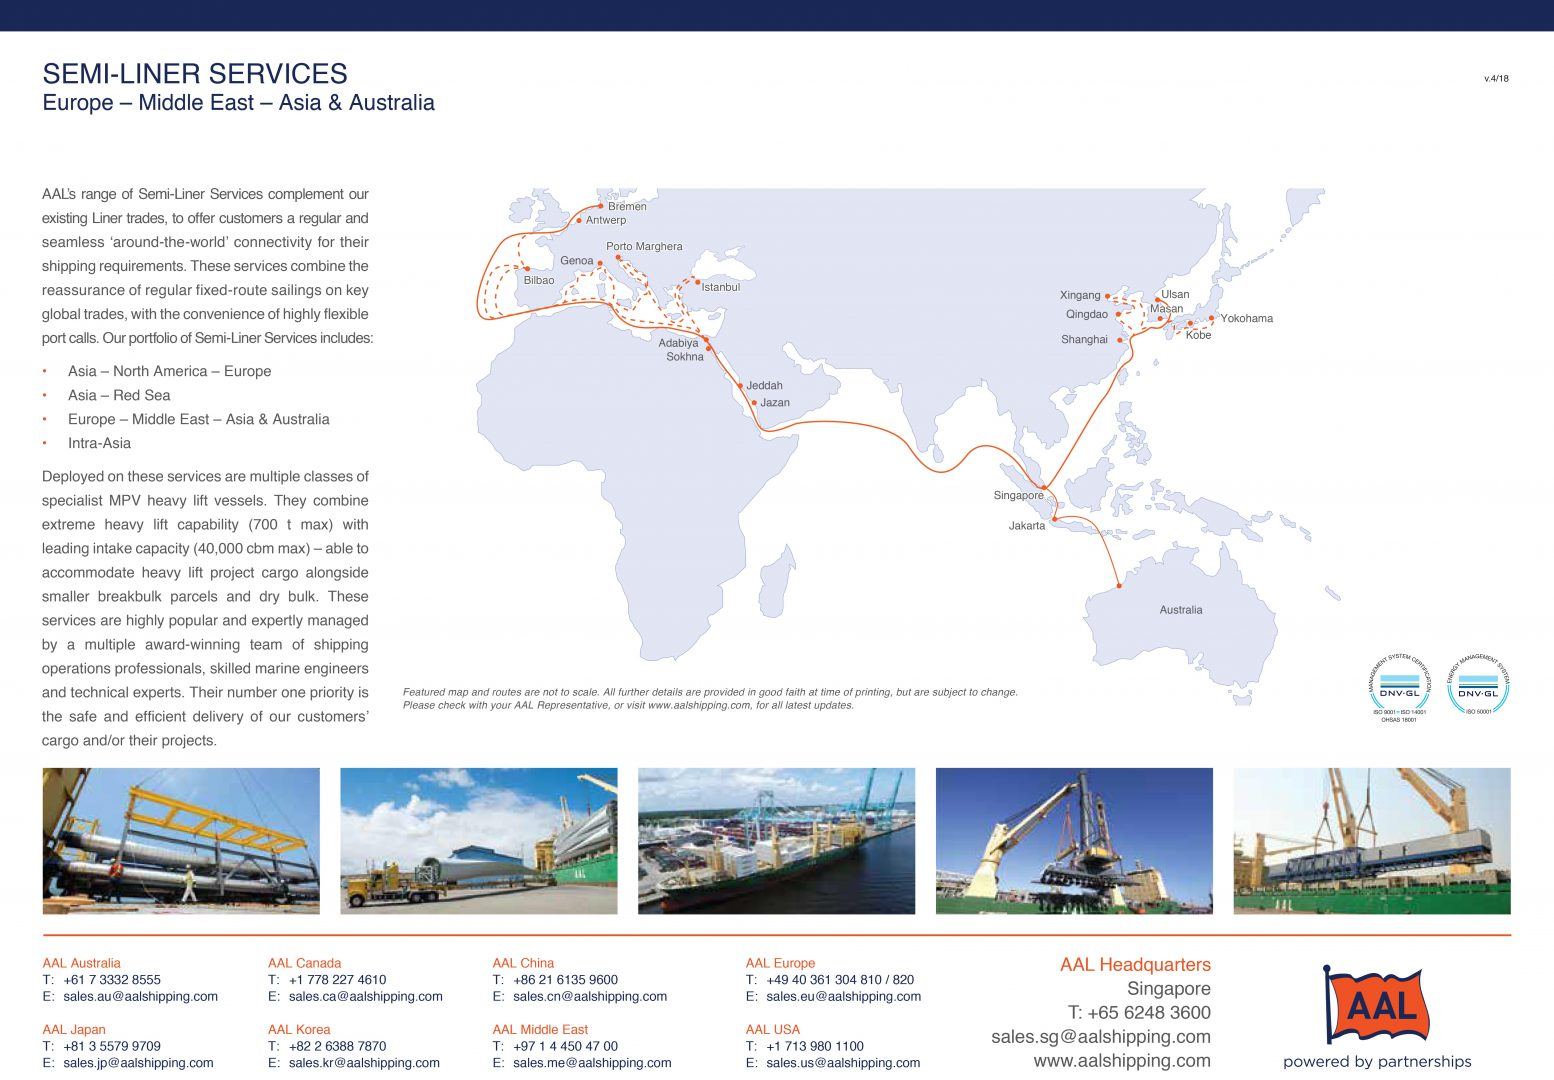 Europe - Middle East - Asia & Australia Semi-Liner Service Route Map